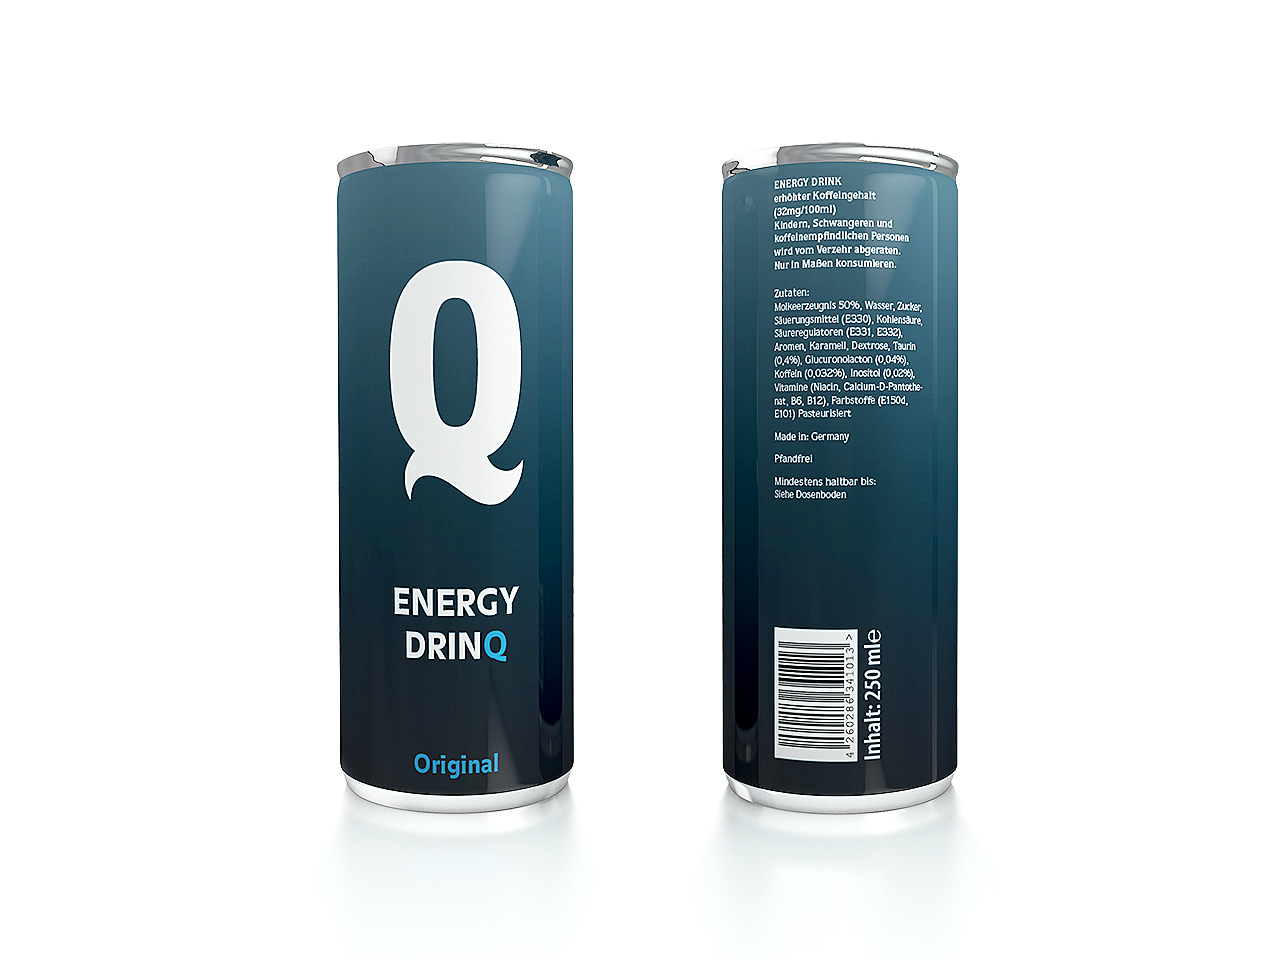 Cinema 4D Energy Dosen in 3D